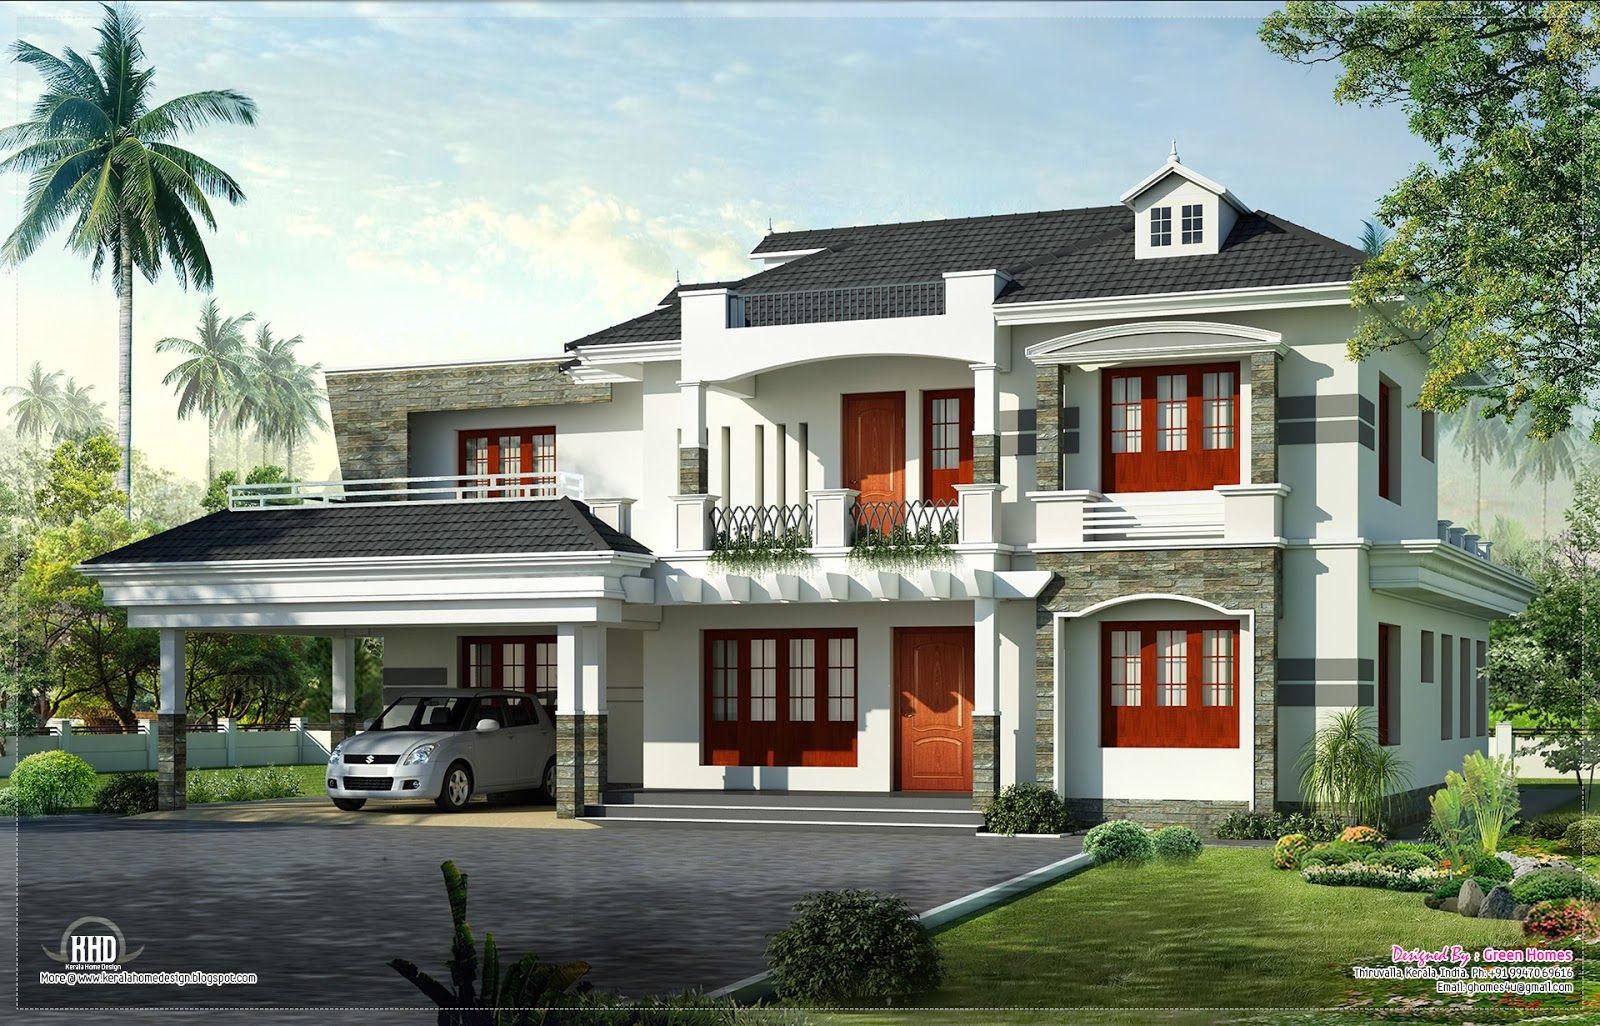 amazing designs for new homes new kerala home - New Home Designs